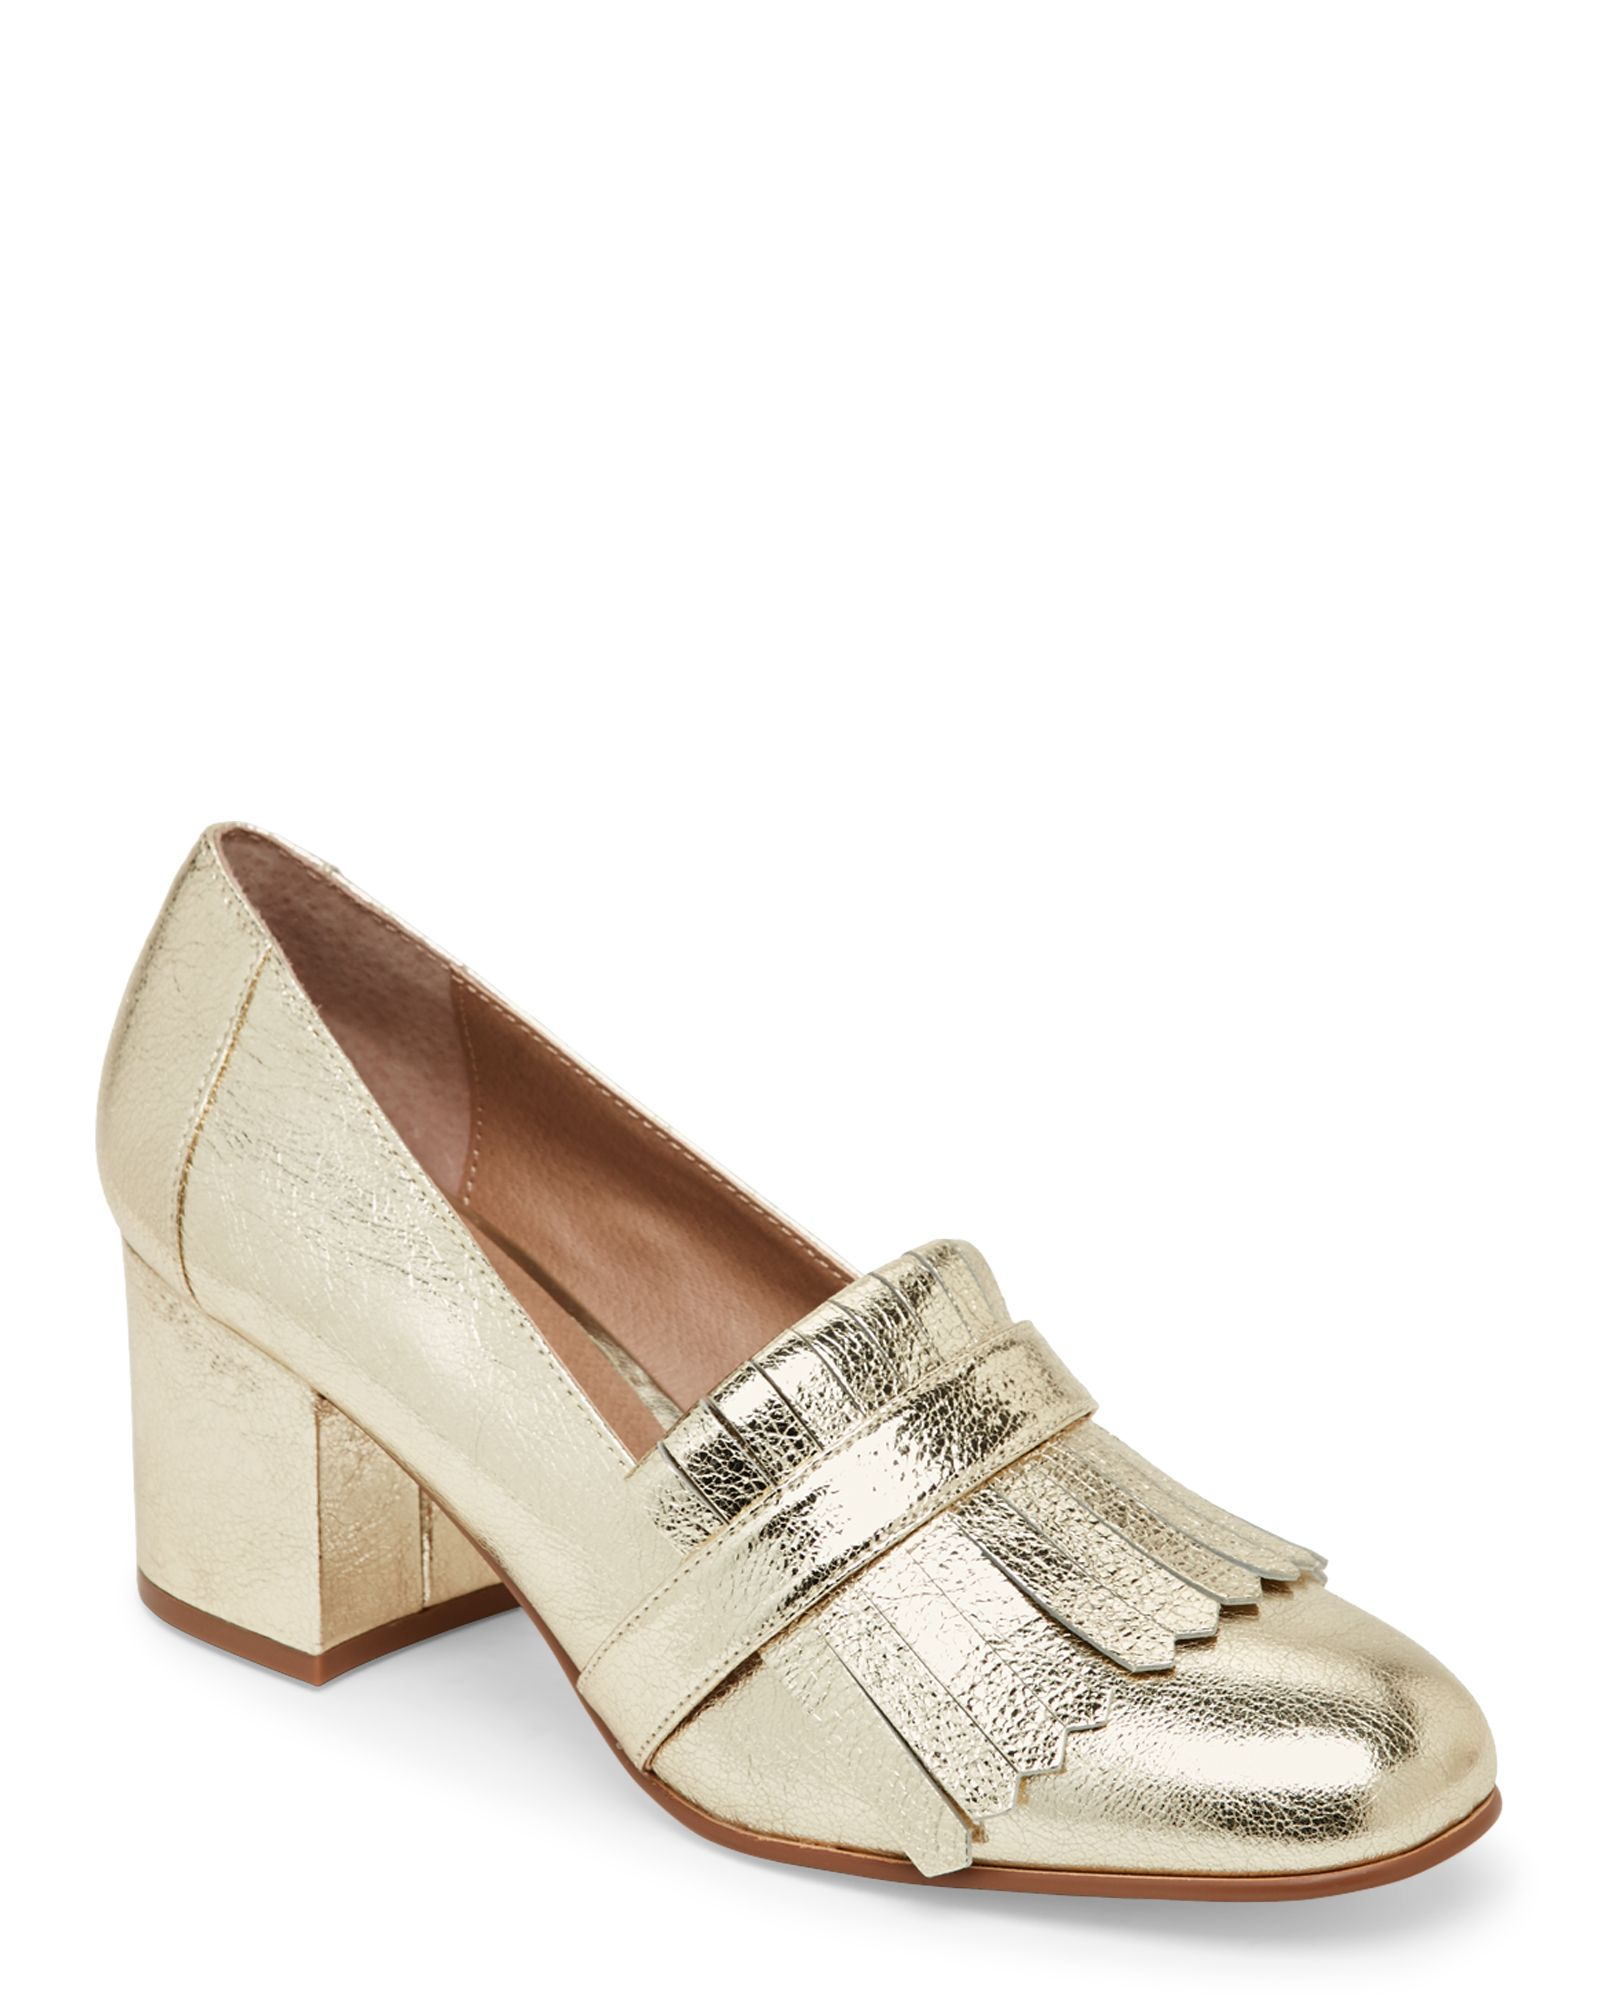 7eeec925135 Steve Madden Gold Kate Kiltie Loafer Pumps